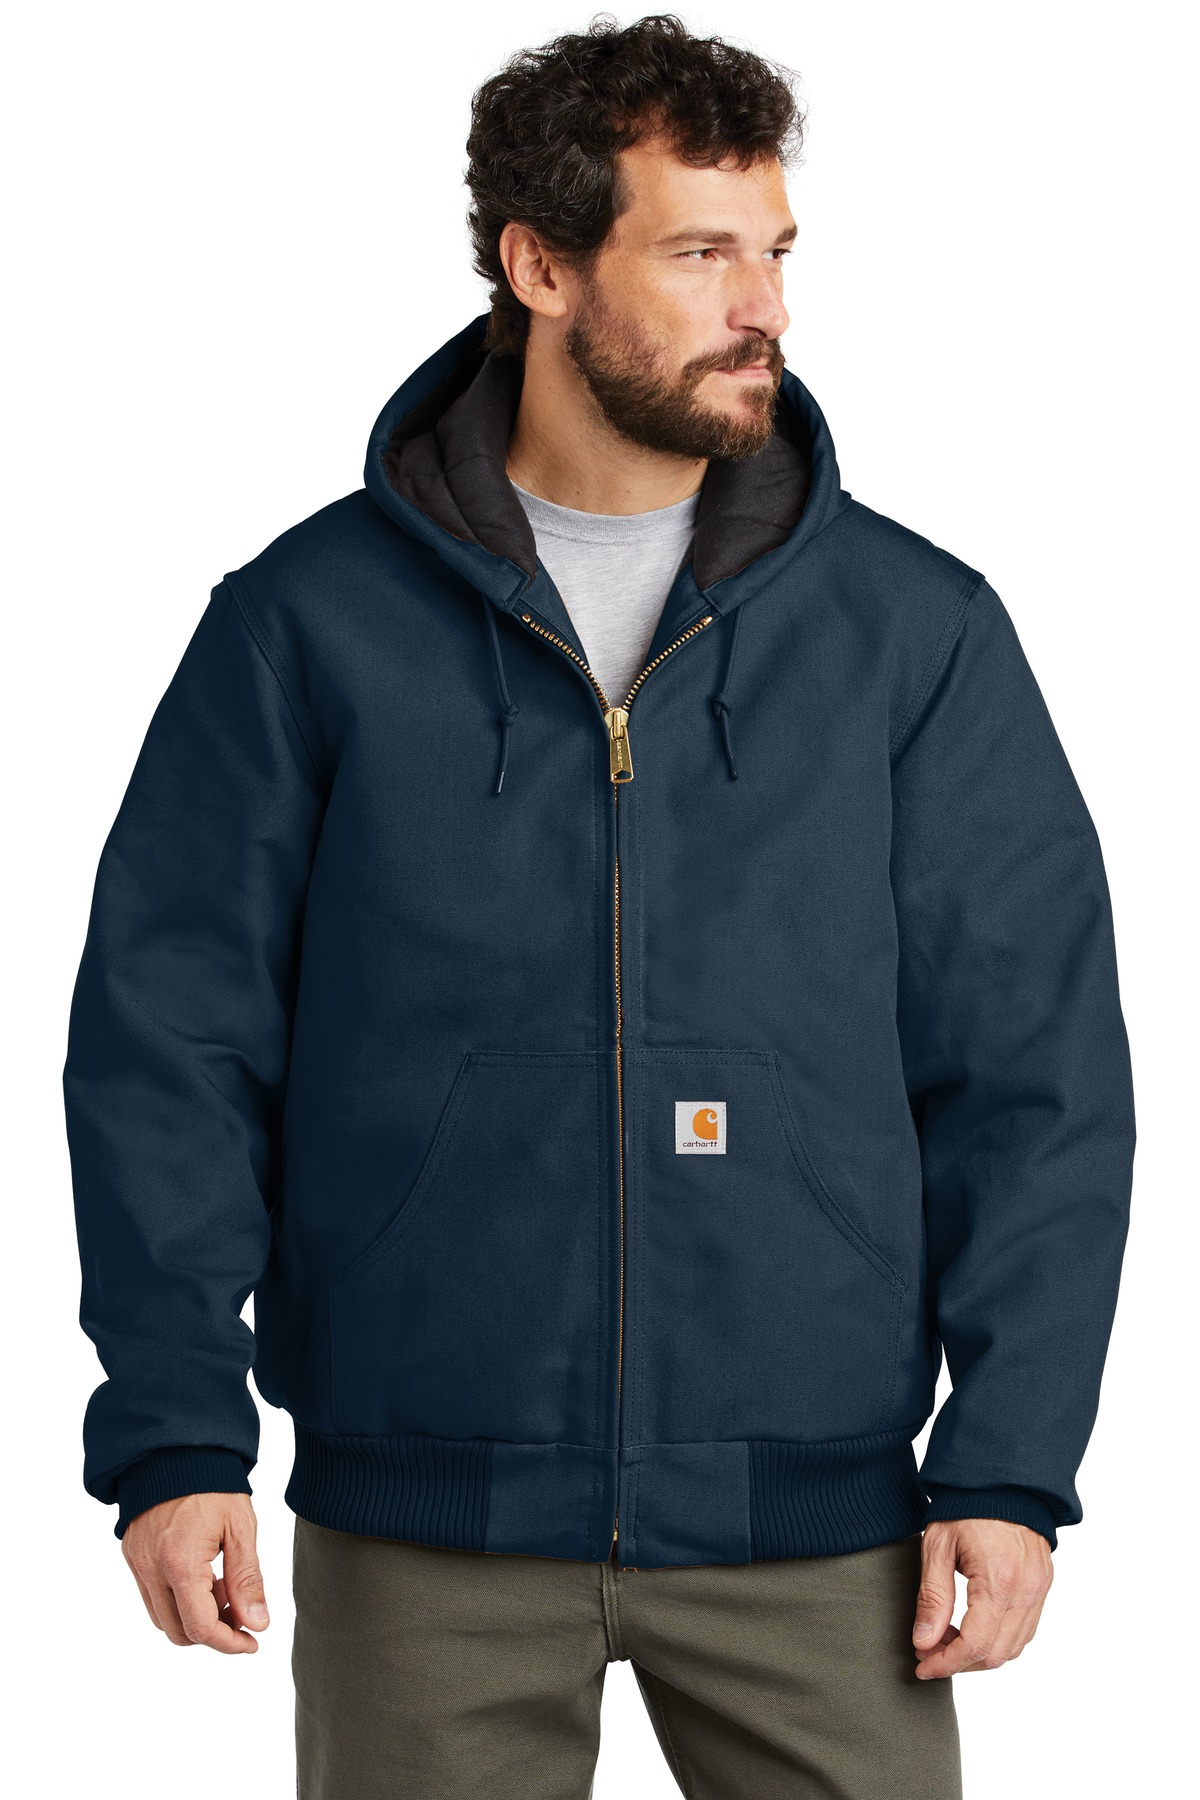 Carhartt  ®  Quilted-Flannel-Lined Duck Active Jac. CTSJ140 - Dark Navy